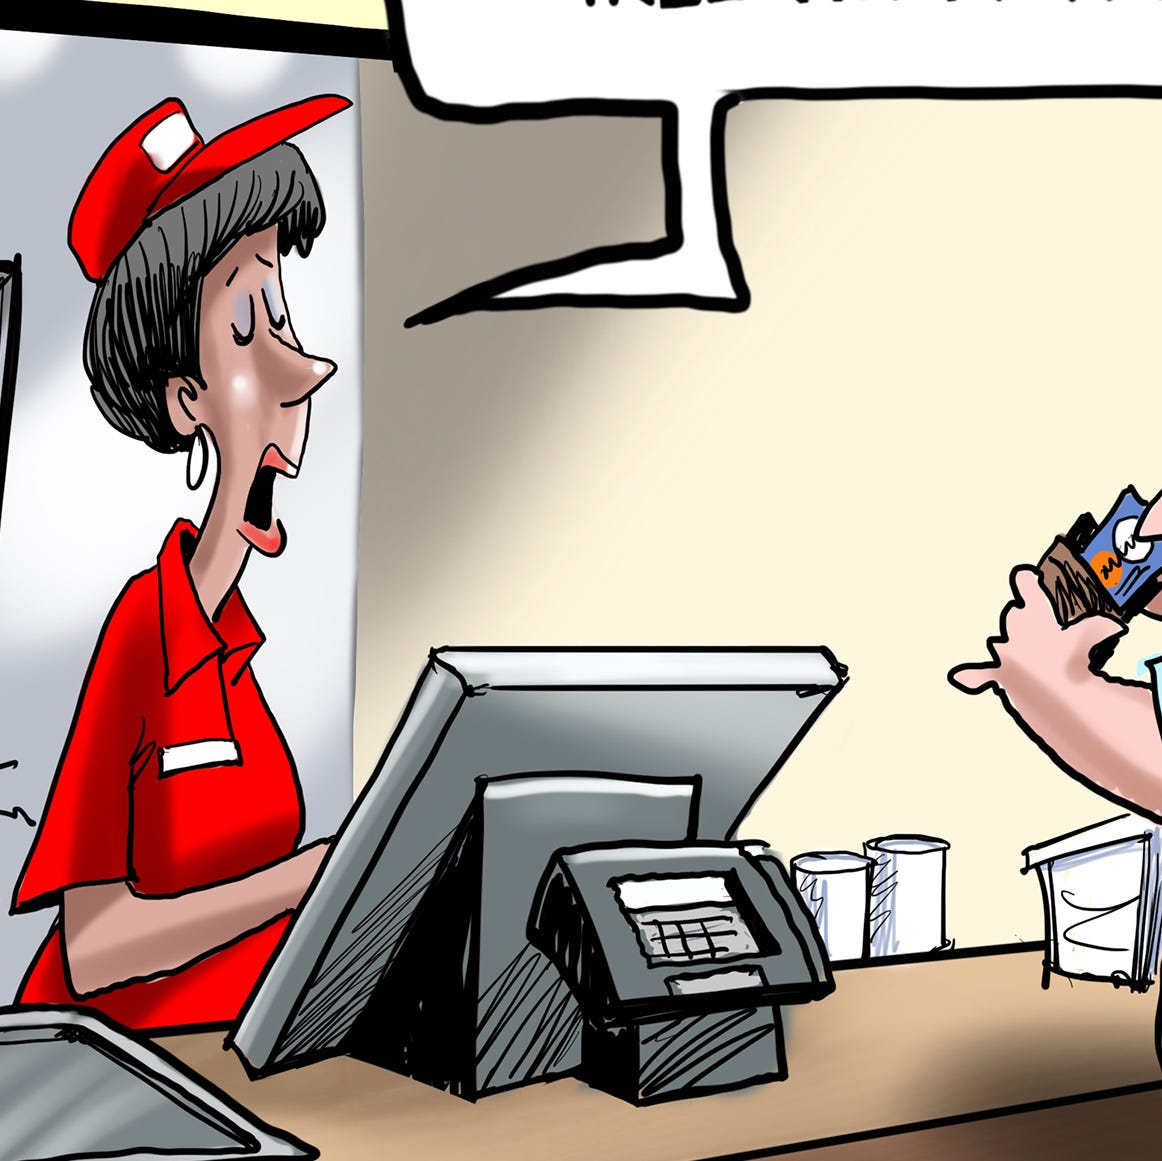 Cartoonist Gary Varvel: Plastic or paper straw problem